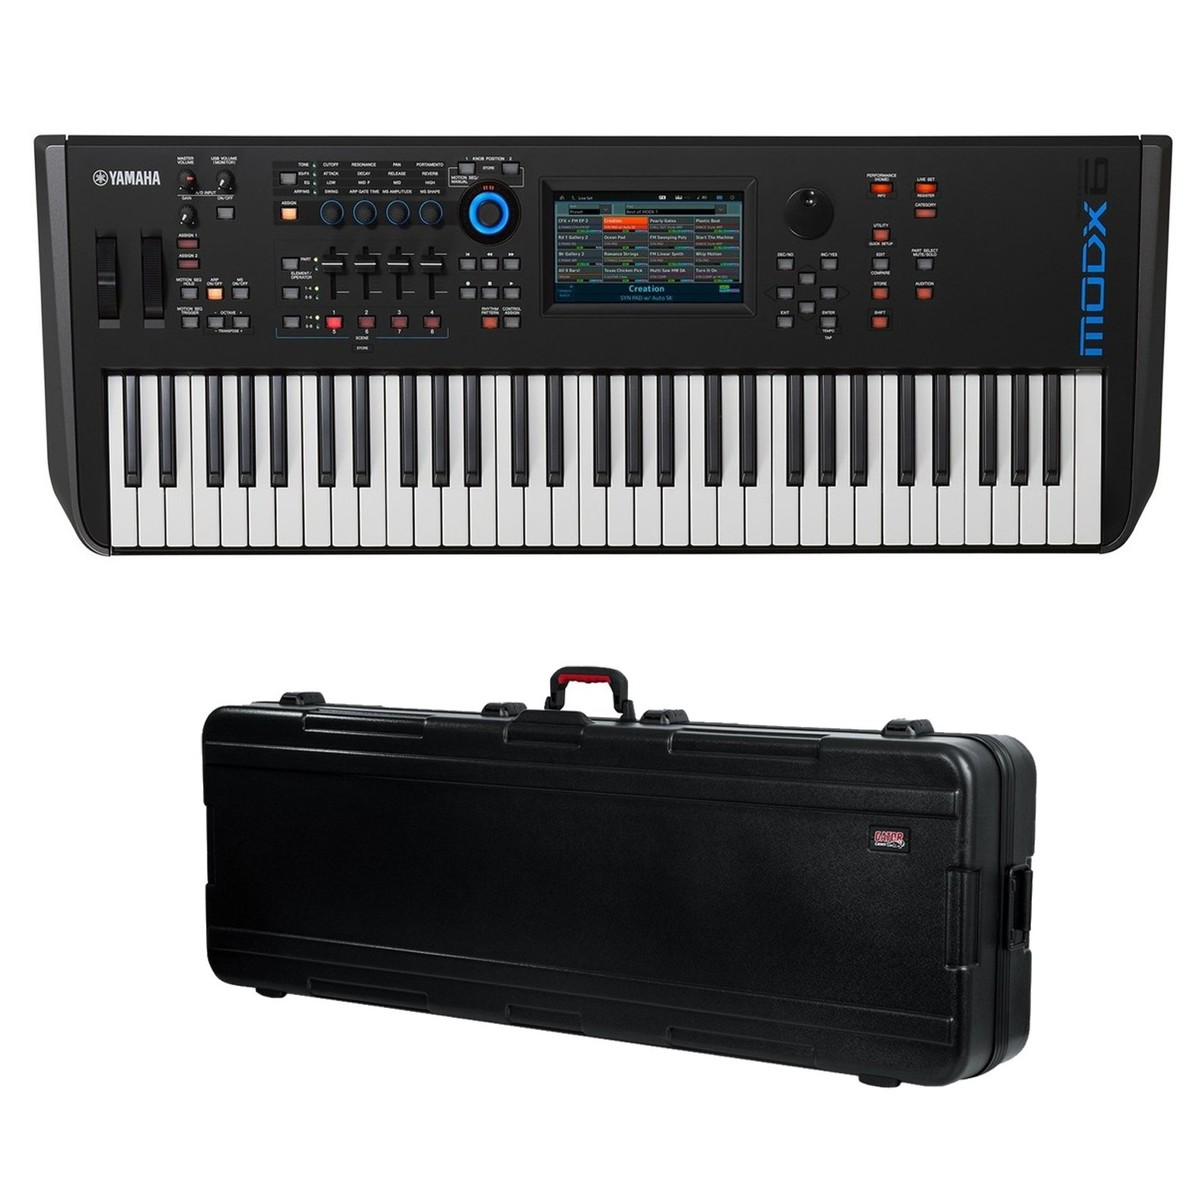 yamaha modx6 synthesizer keyboard with gator hard case at gear4music. Black Bedroom Furniture Sets. Home Design Ideas